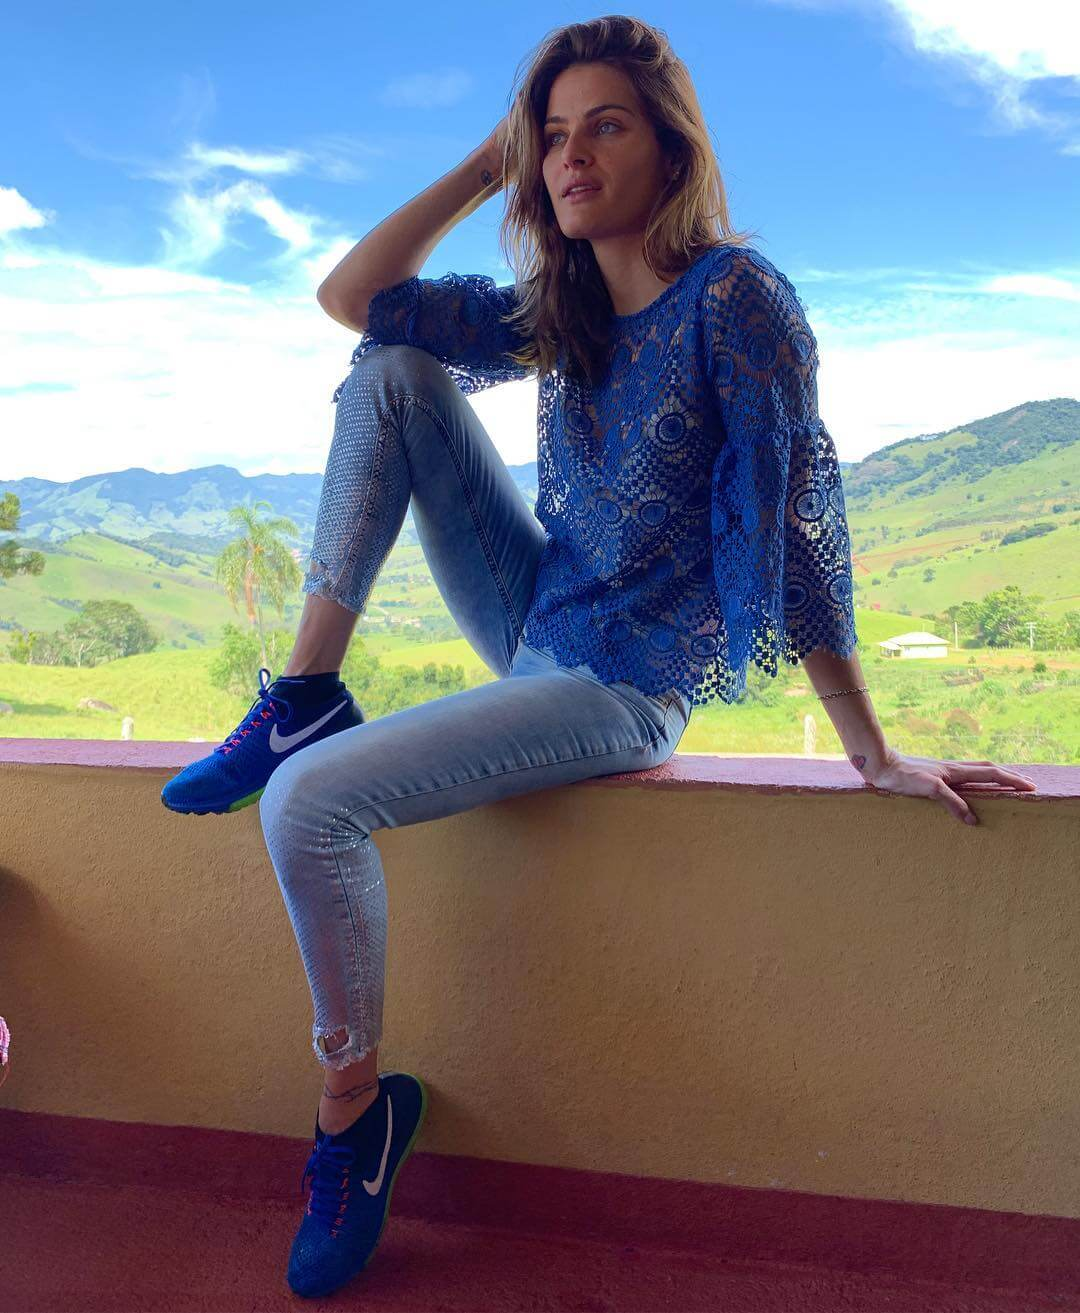 Brazilian Isabeli Fontana in Blue Top and Ankle Length Jeans - January 19, 2019 1